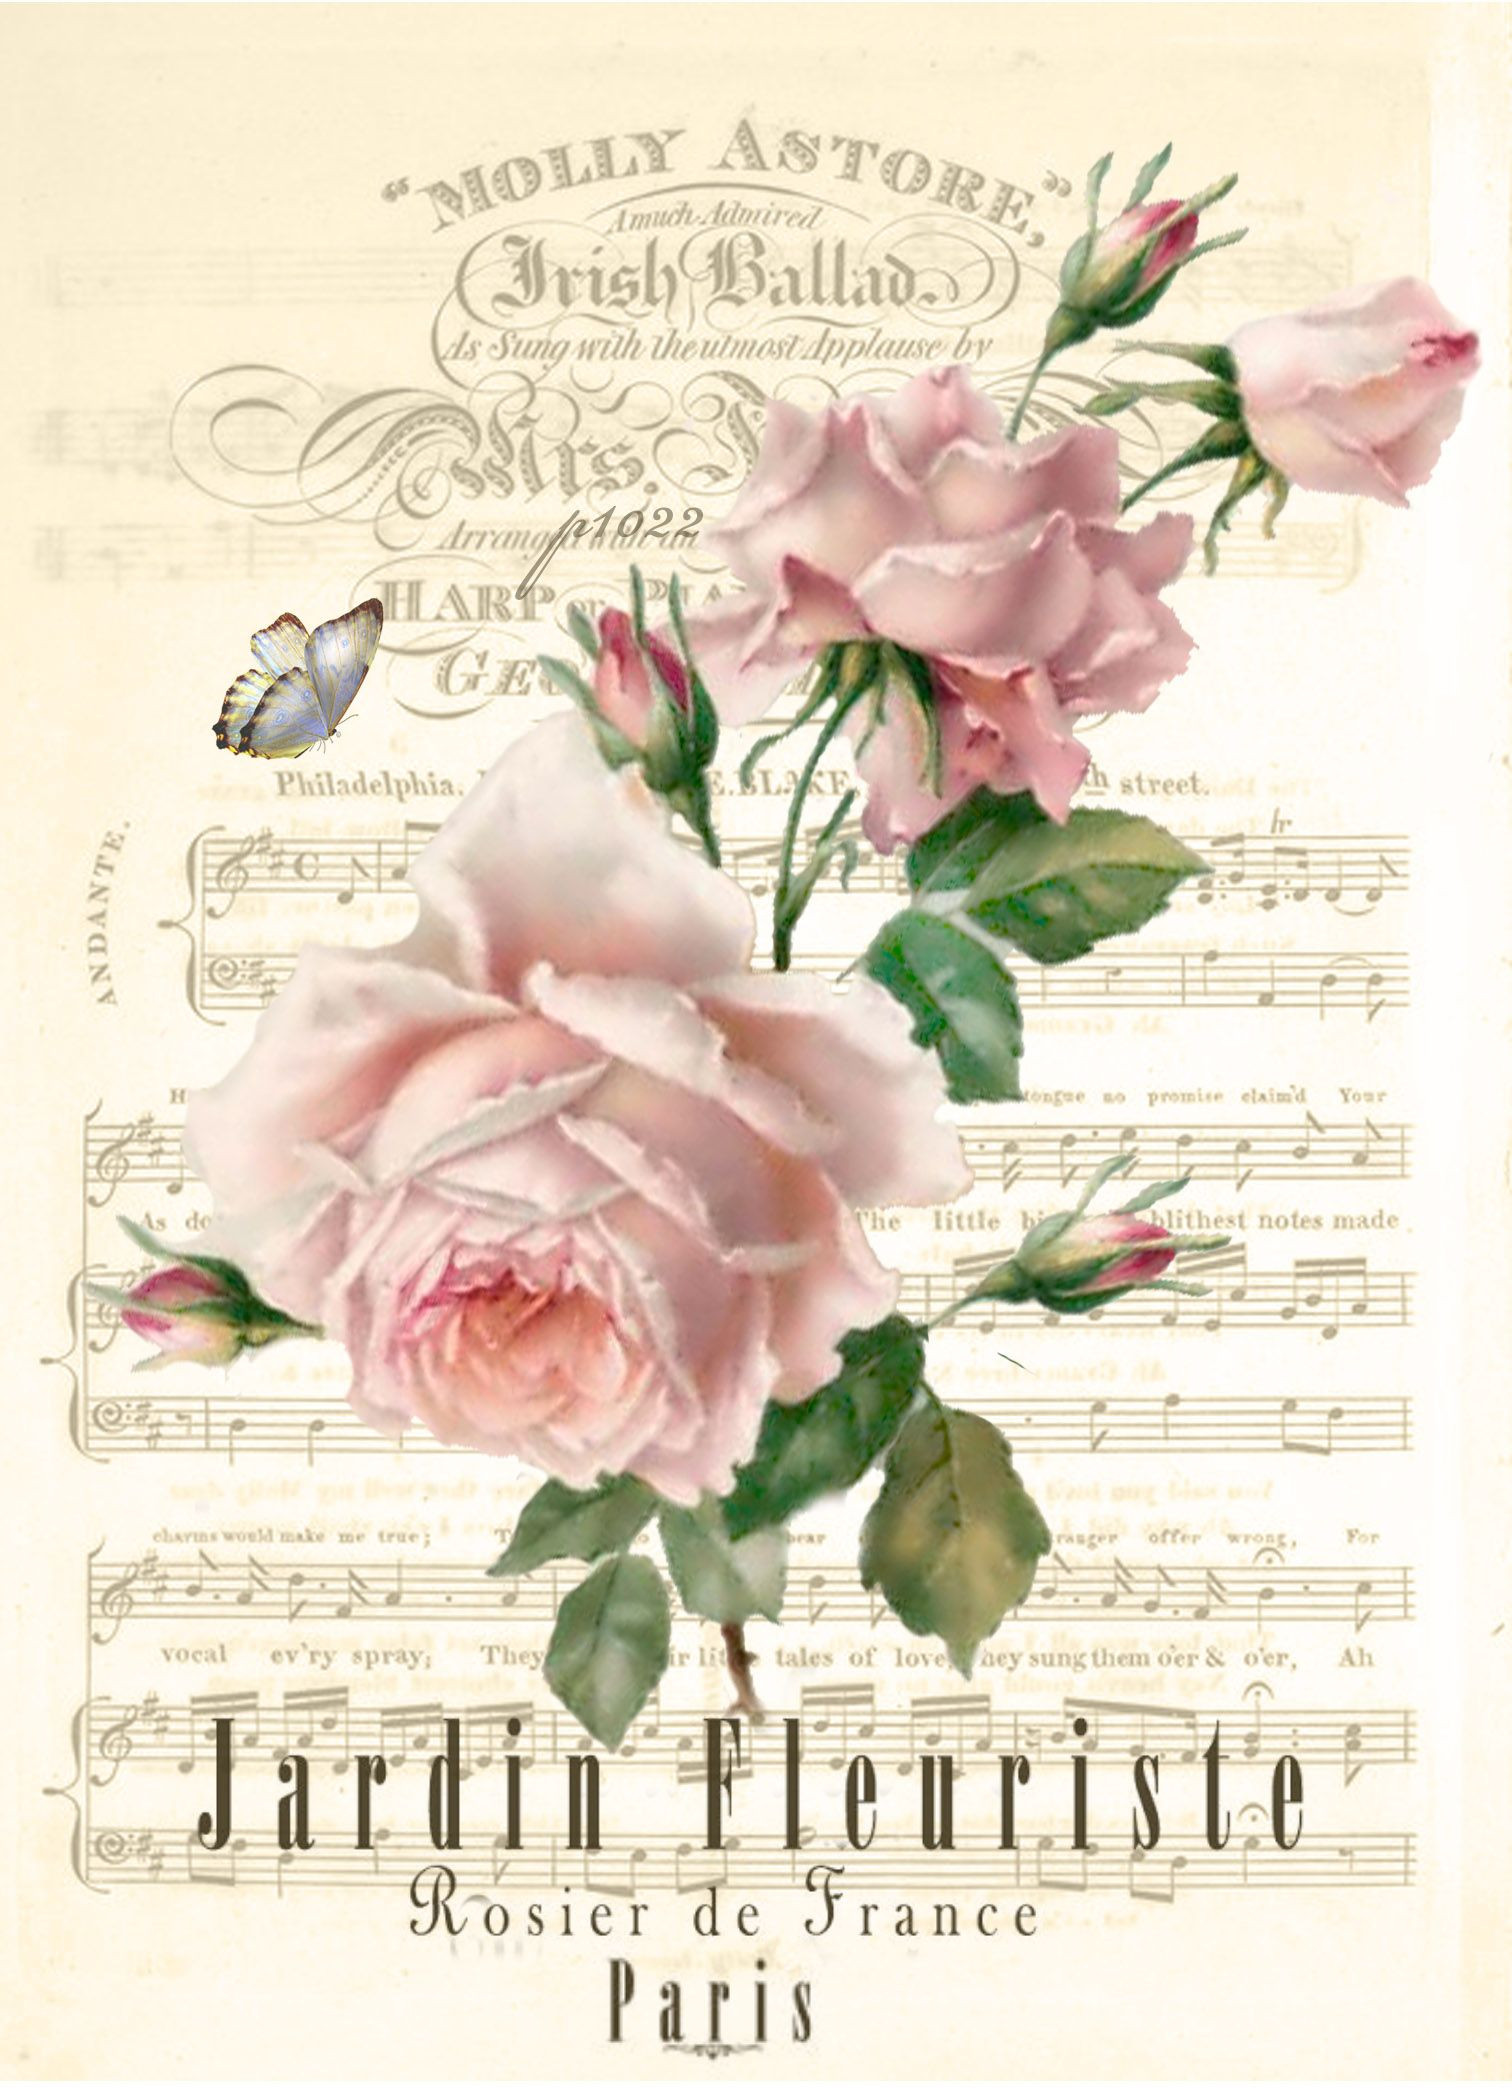 Flower Web Luxury Vintage Rose Music Sheet Digital Collage P1022 Free for Personal